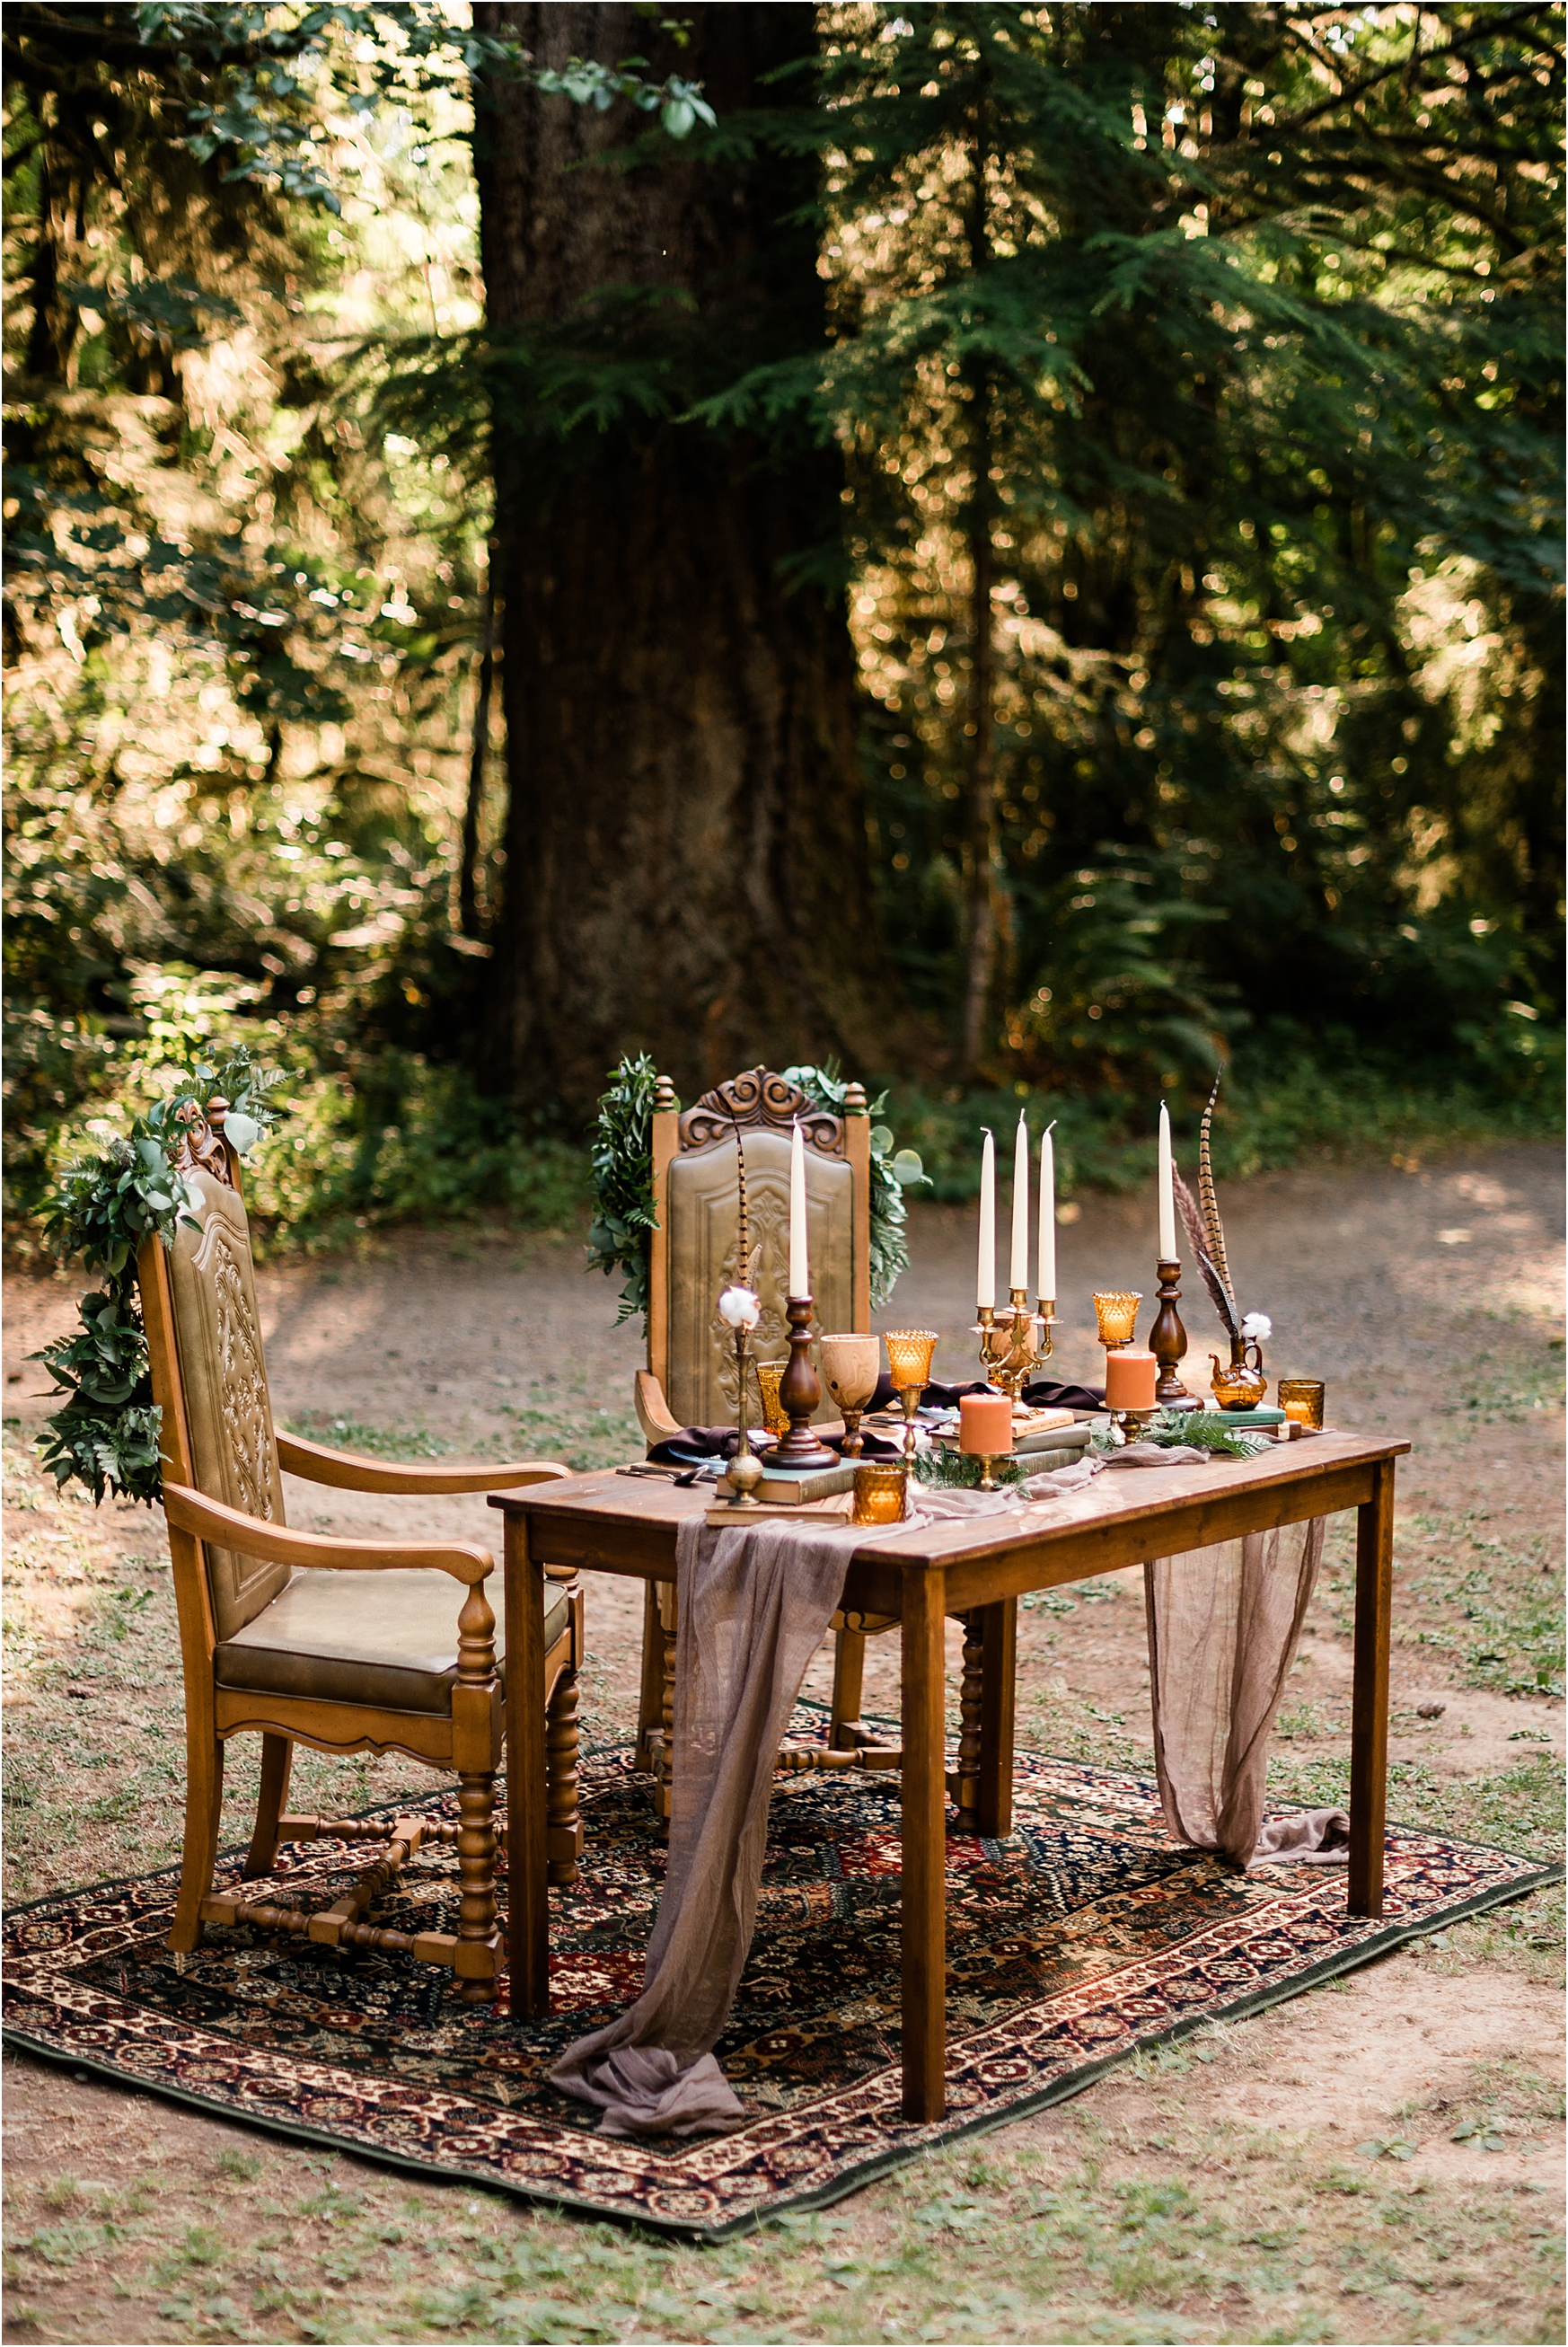 Sweetheart table at Cassy & Viva's bohemian Oregon destination wedding at Camp Lane. Image by Forthright Photo.